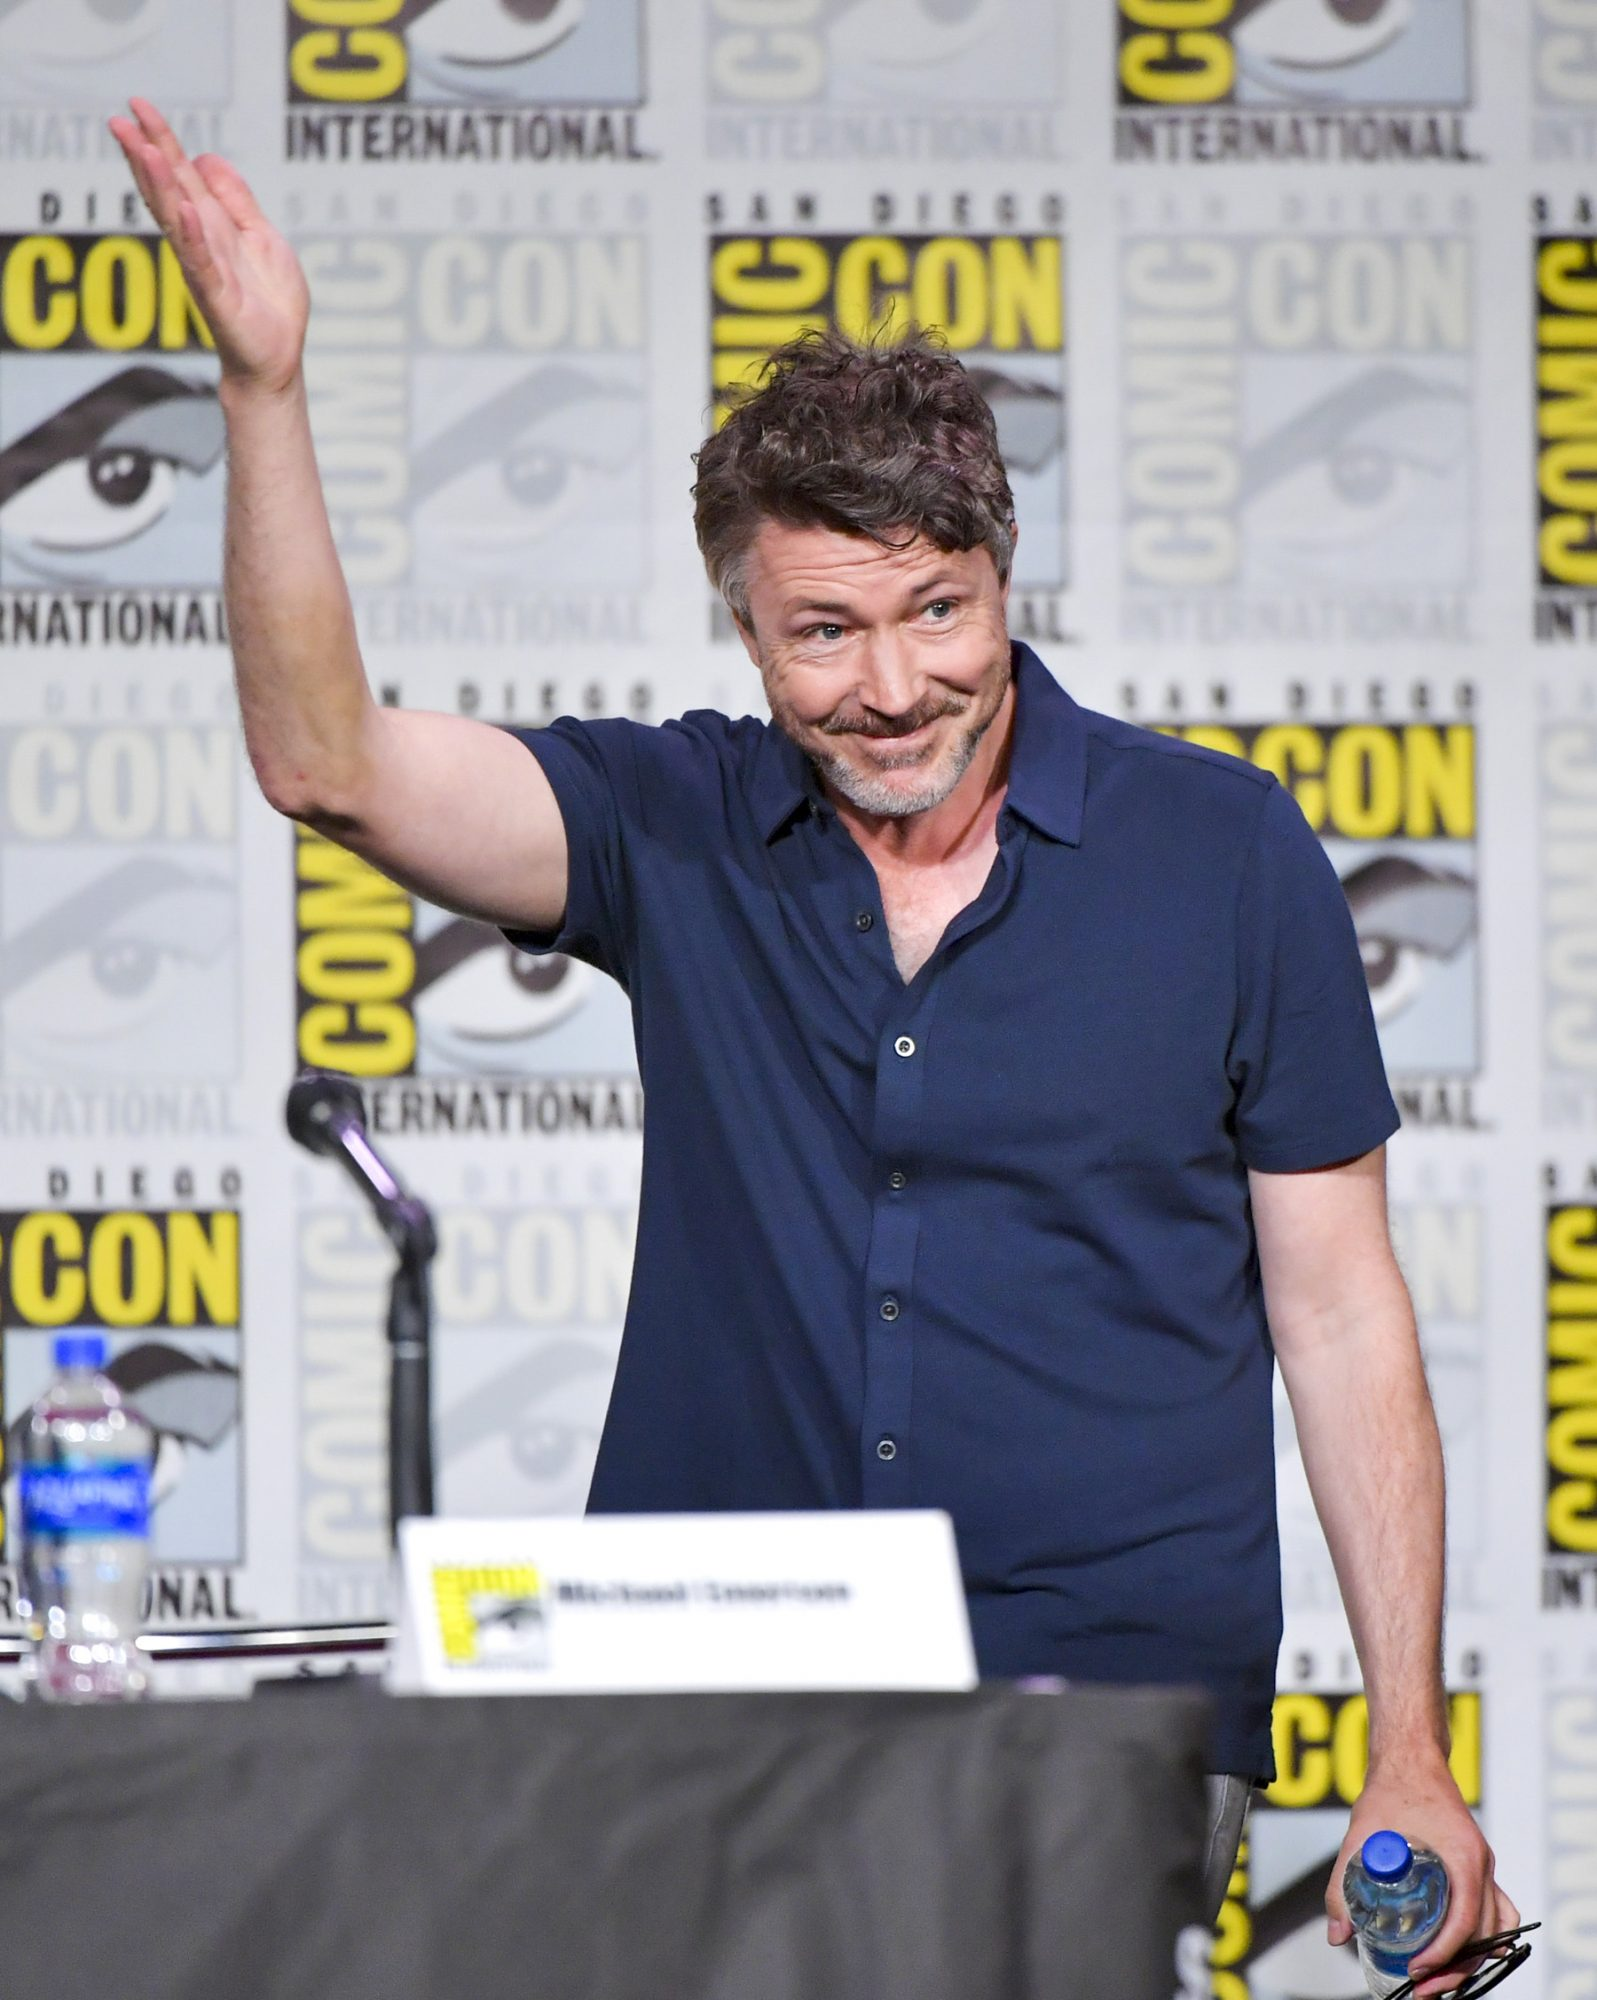 SAN DIEGO, CALIFORNIA - JULY 19: Aidan Gillen speaks onstage during Entertainment Weekly: Brave Warriors at San Diego Convention Center on July 19, 2019 in San Diego, California. (Photo by Amy Sussman/Getty Images)